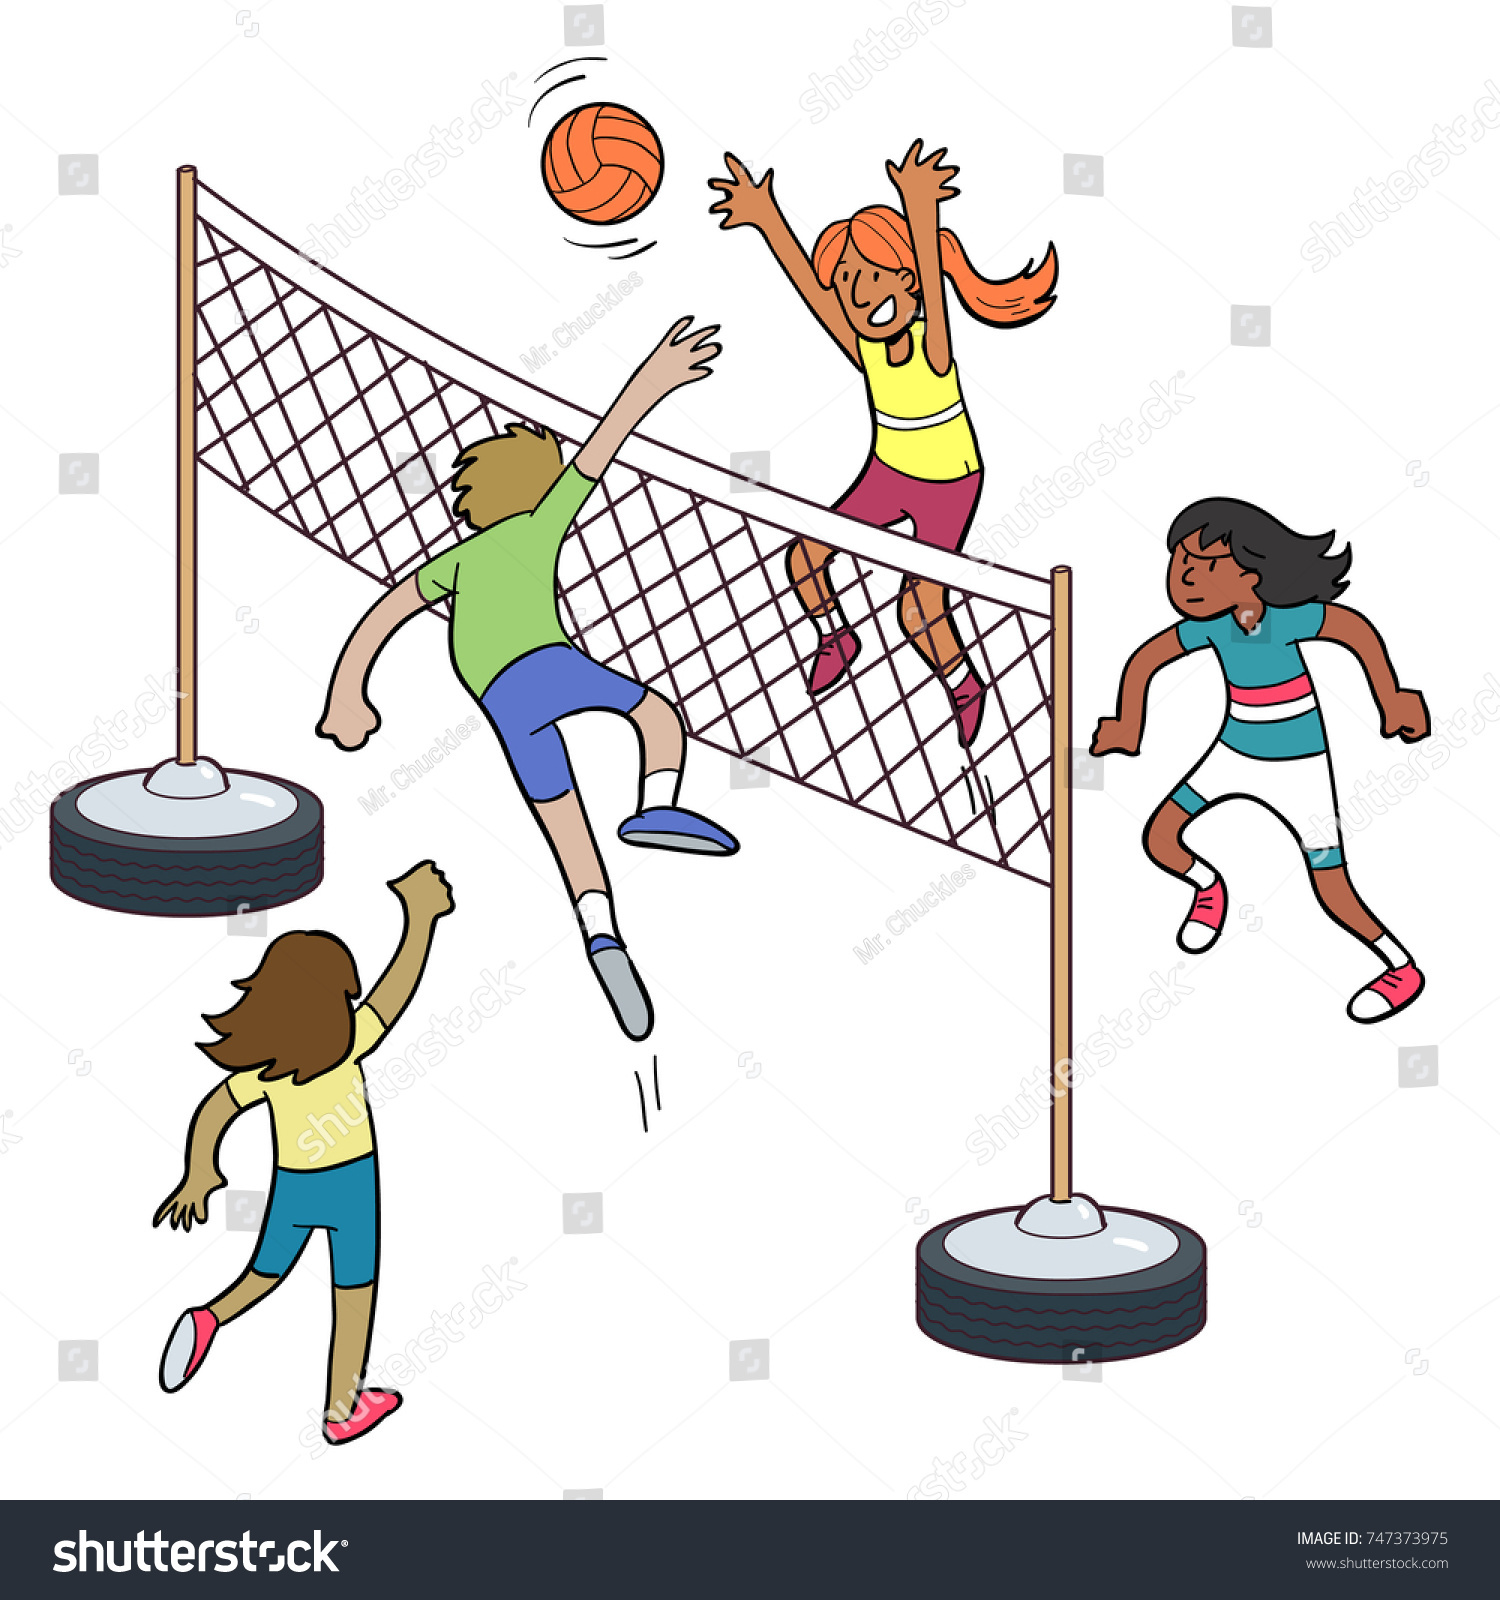 Cartoon People Playing Volleyball Stock Vector Royalty Free 747373975